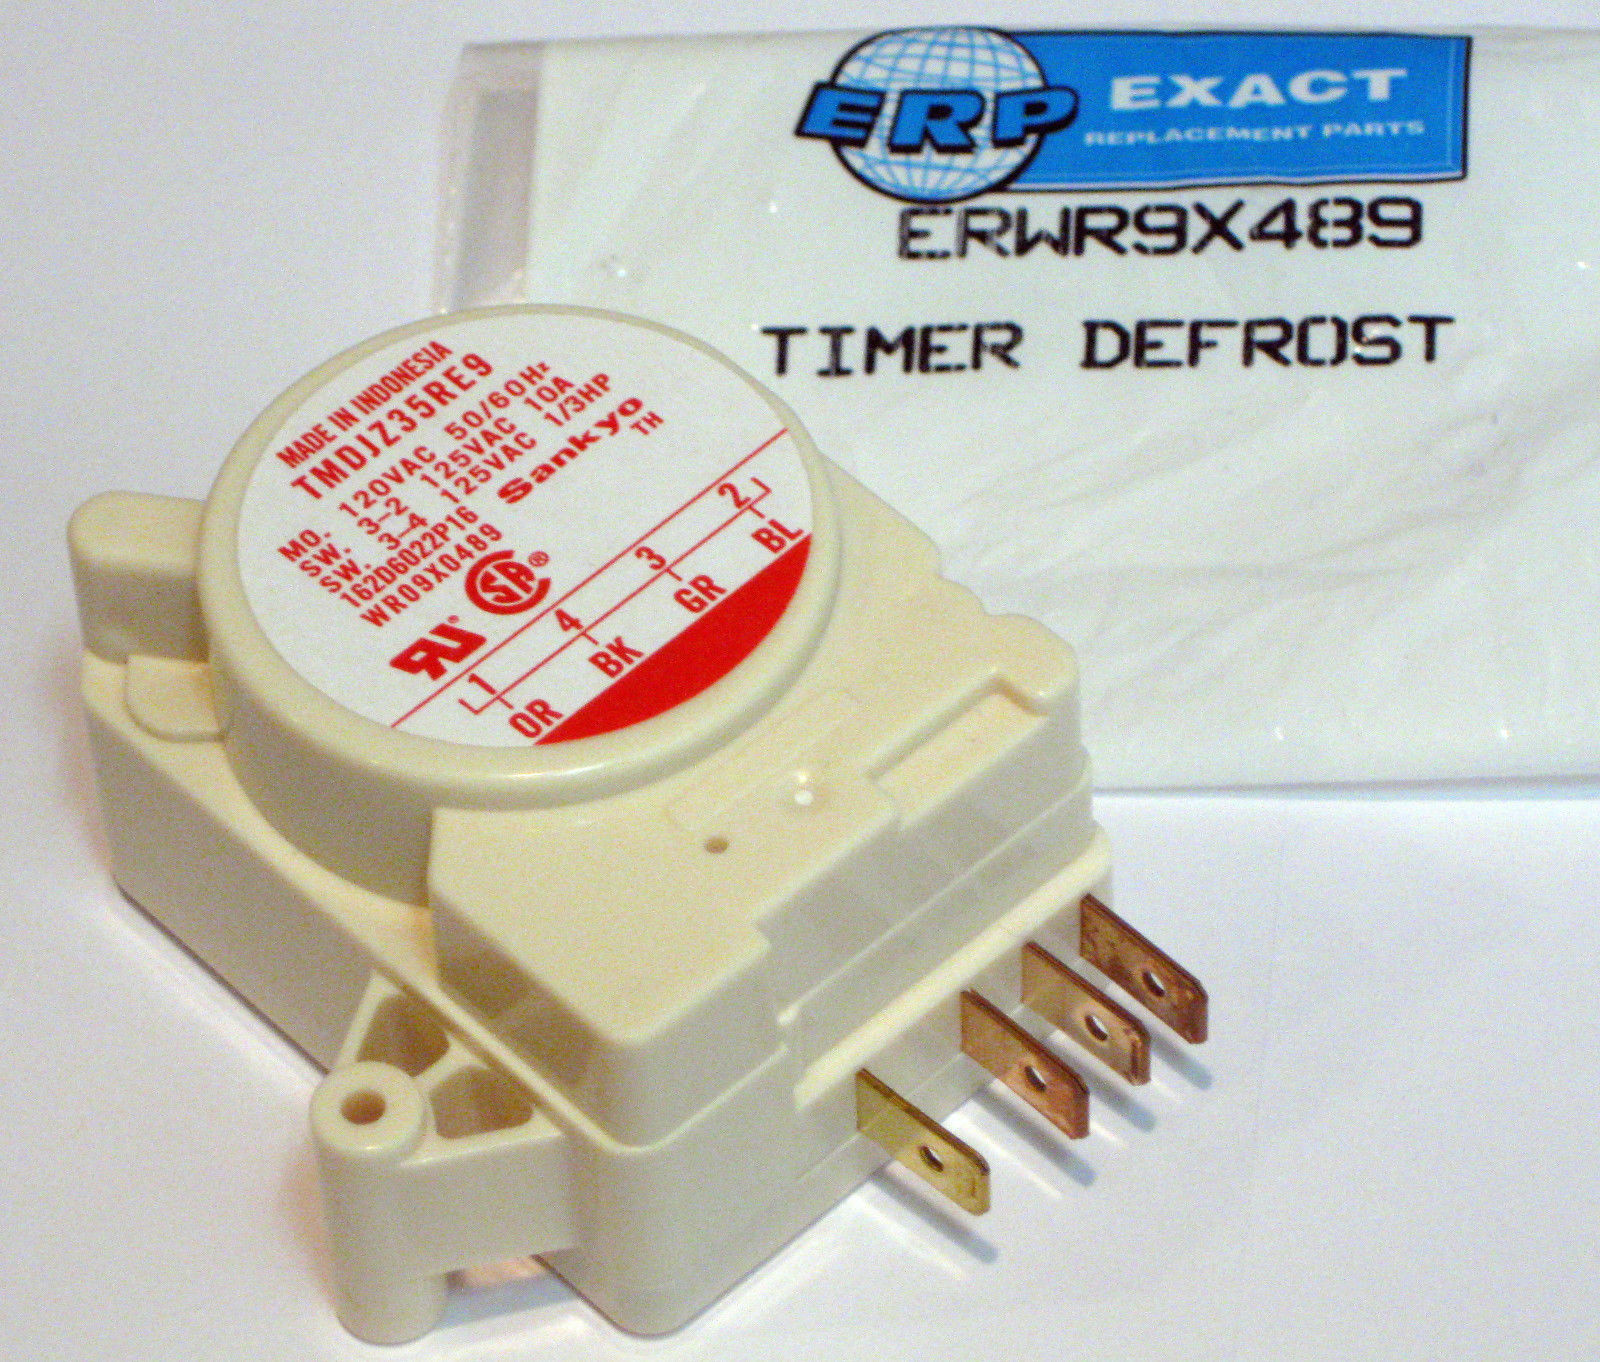 Wr9x489 For Ge Refrigerator Defrost Timer Control